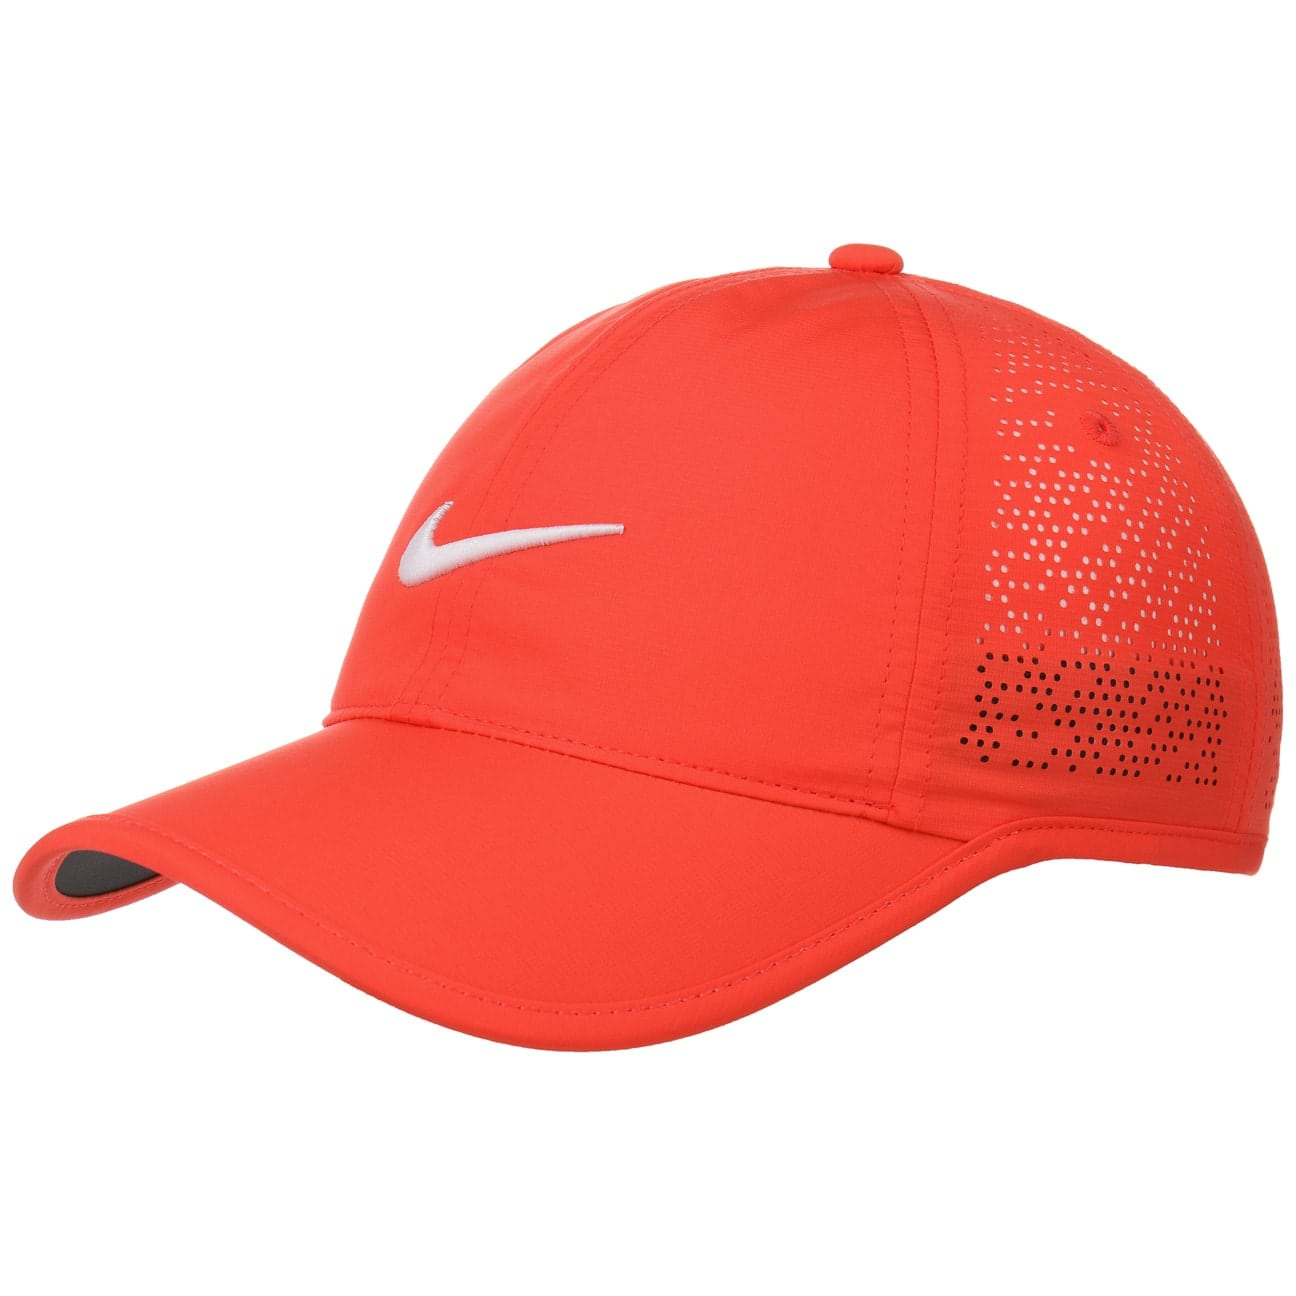 casquette-swoosh-perforation-by-nike-baseball-cap